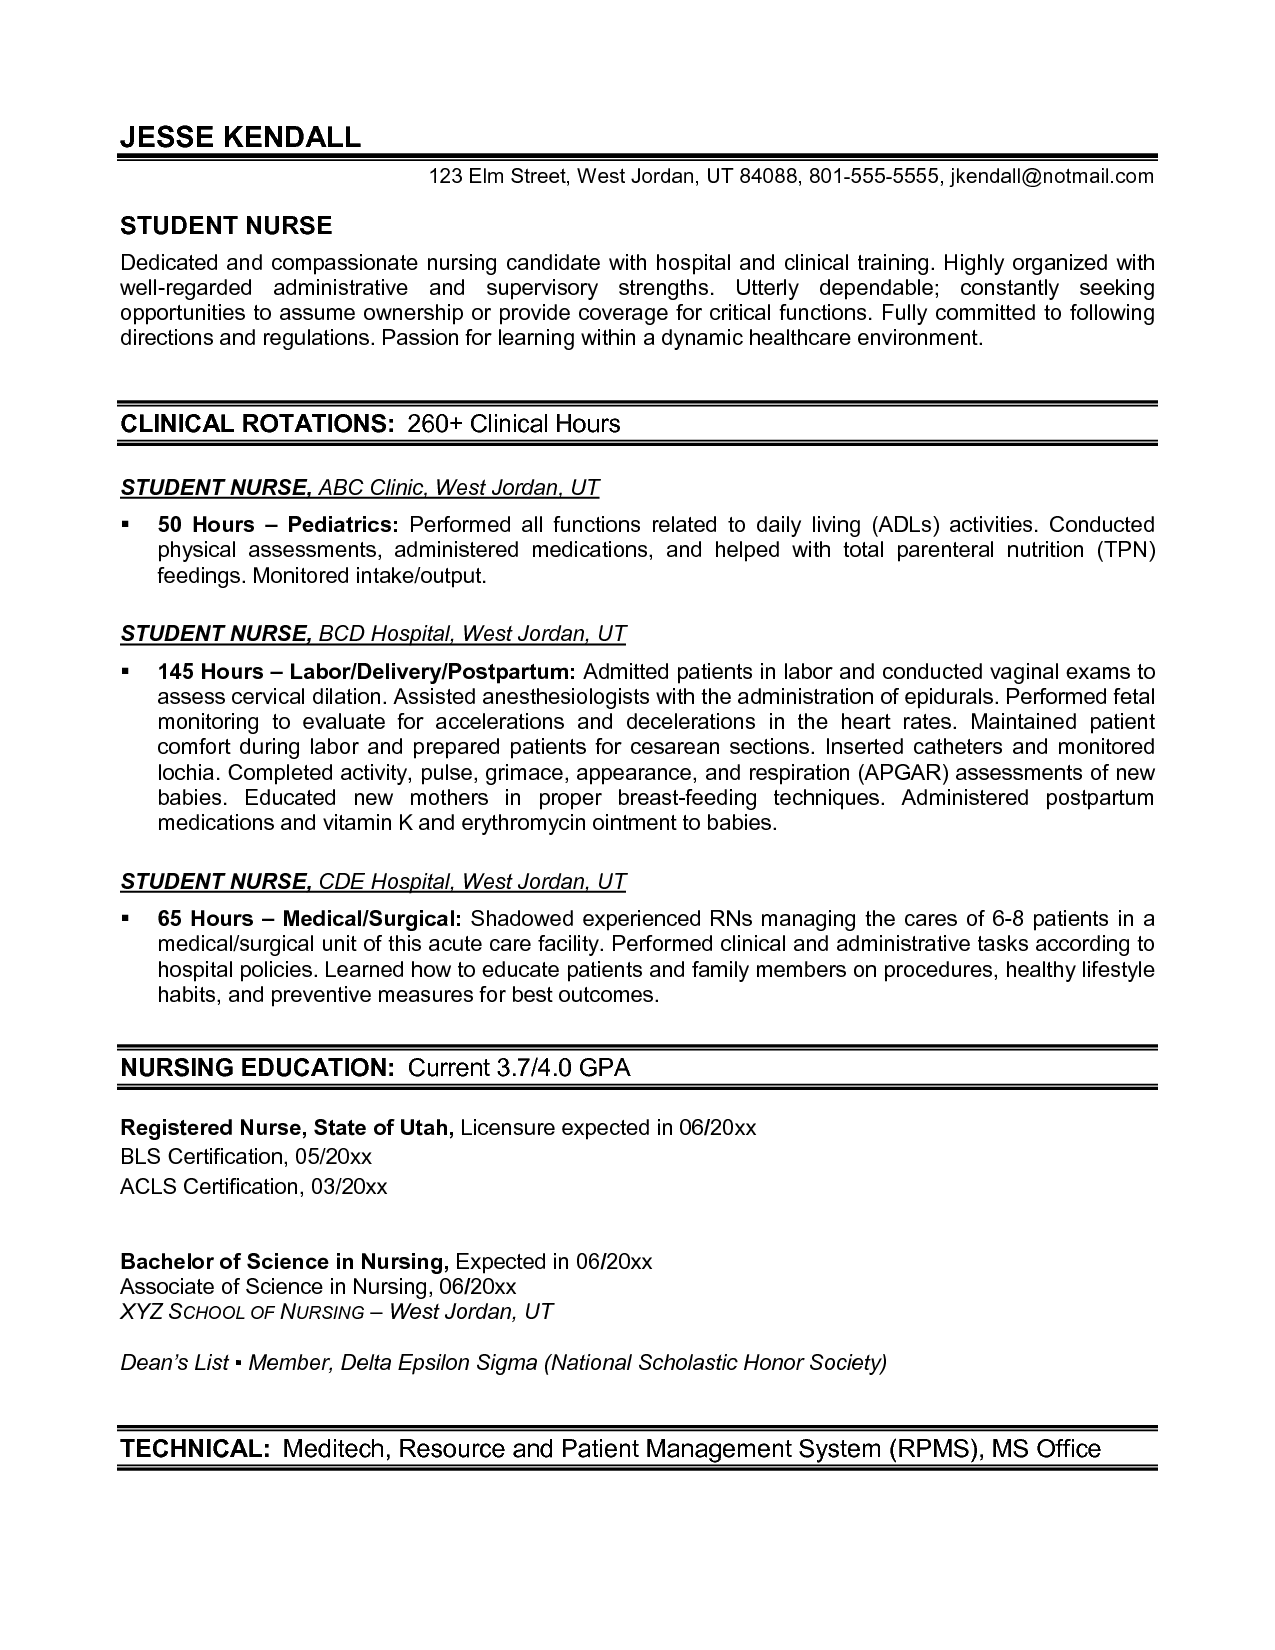 Resume Template Nursing  Nursing    Nursing Resume